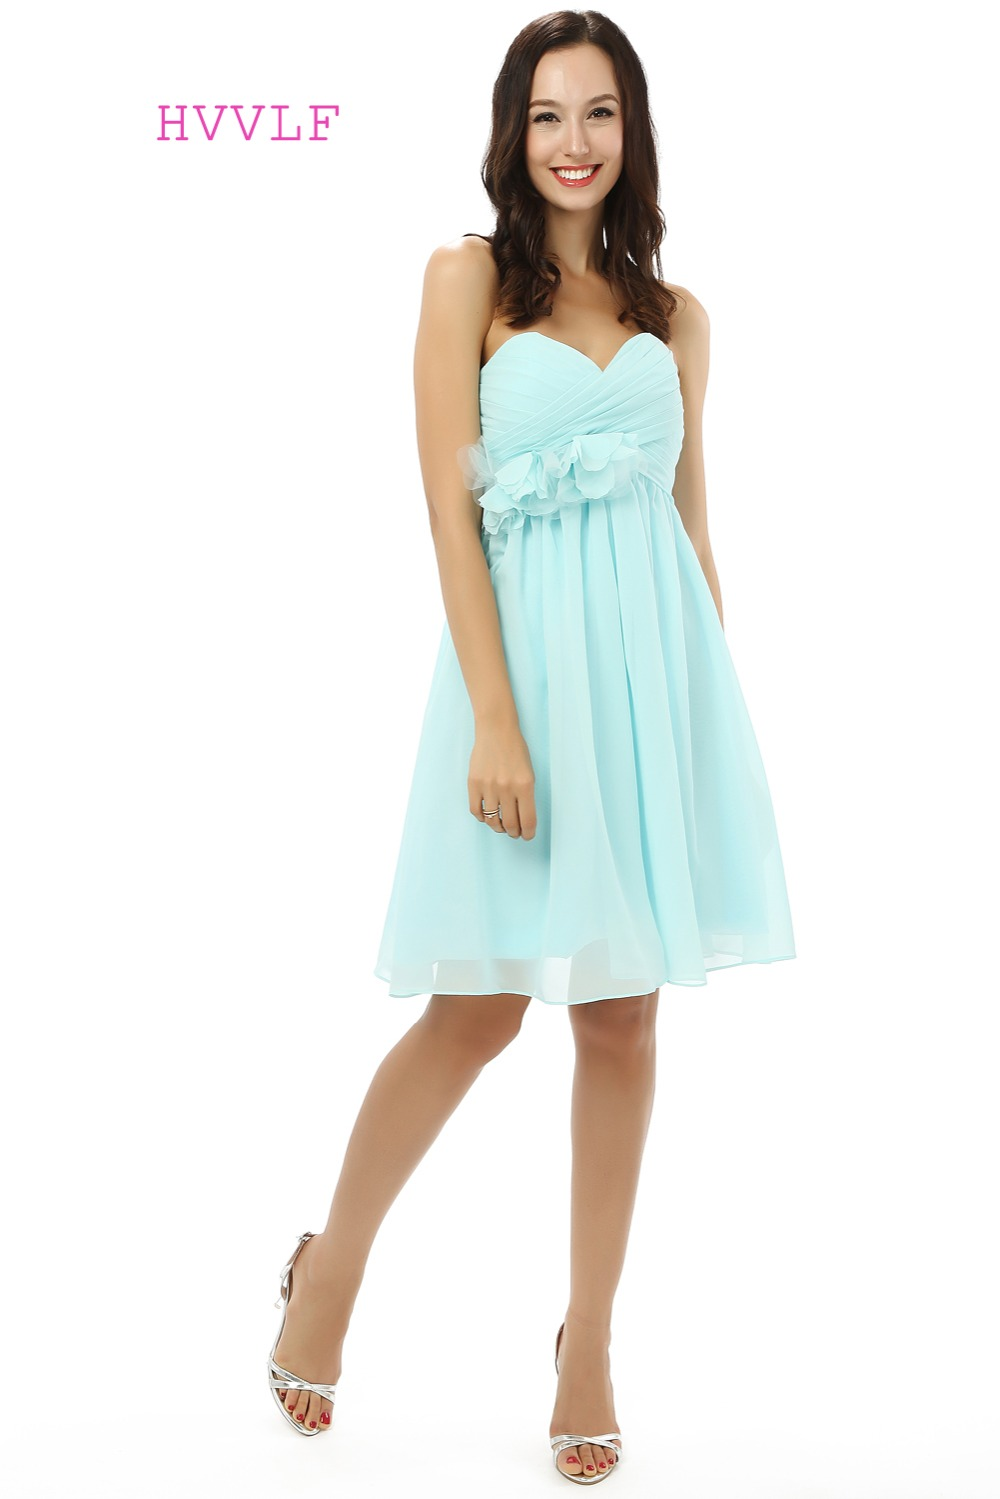 Cheap 2017 Cheap Bridesmaid Dresses Under 50 A-line Sweetheart Short Mini Chiffon Turquoise Flowers Wedding Party Dresses